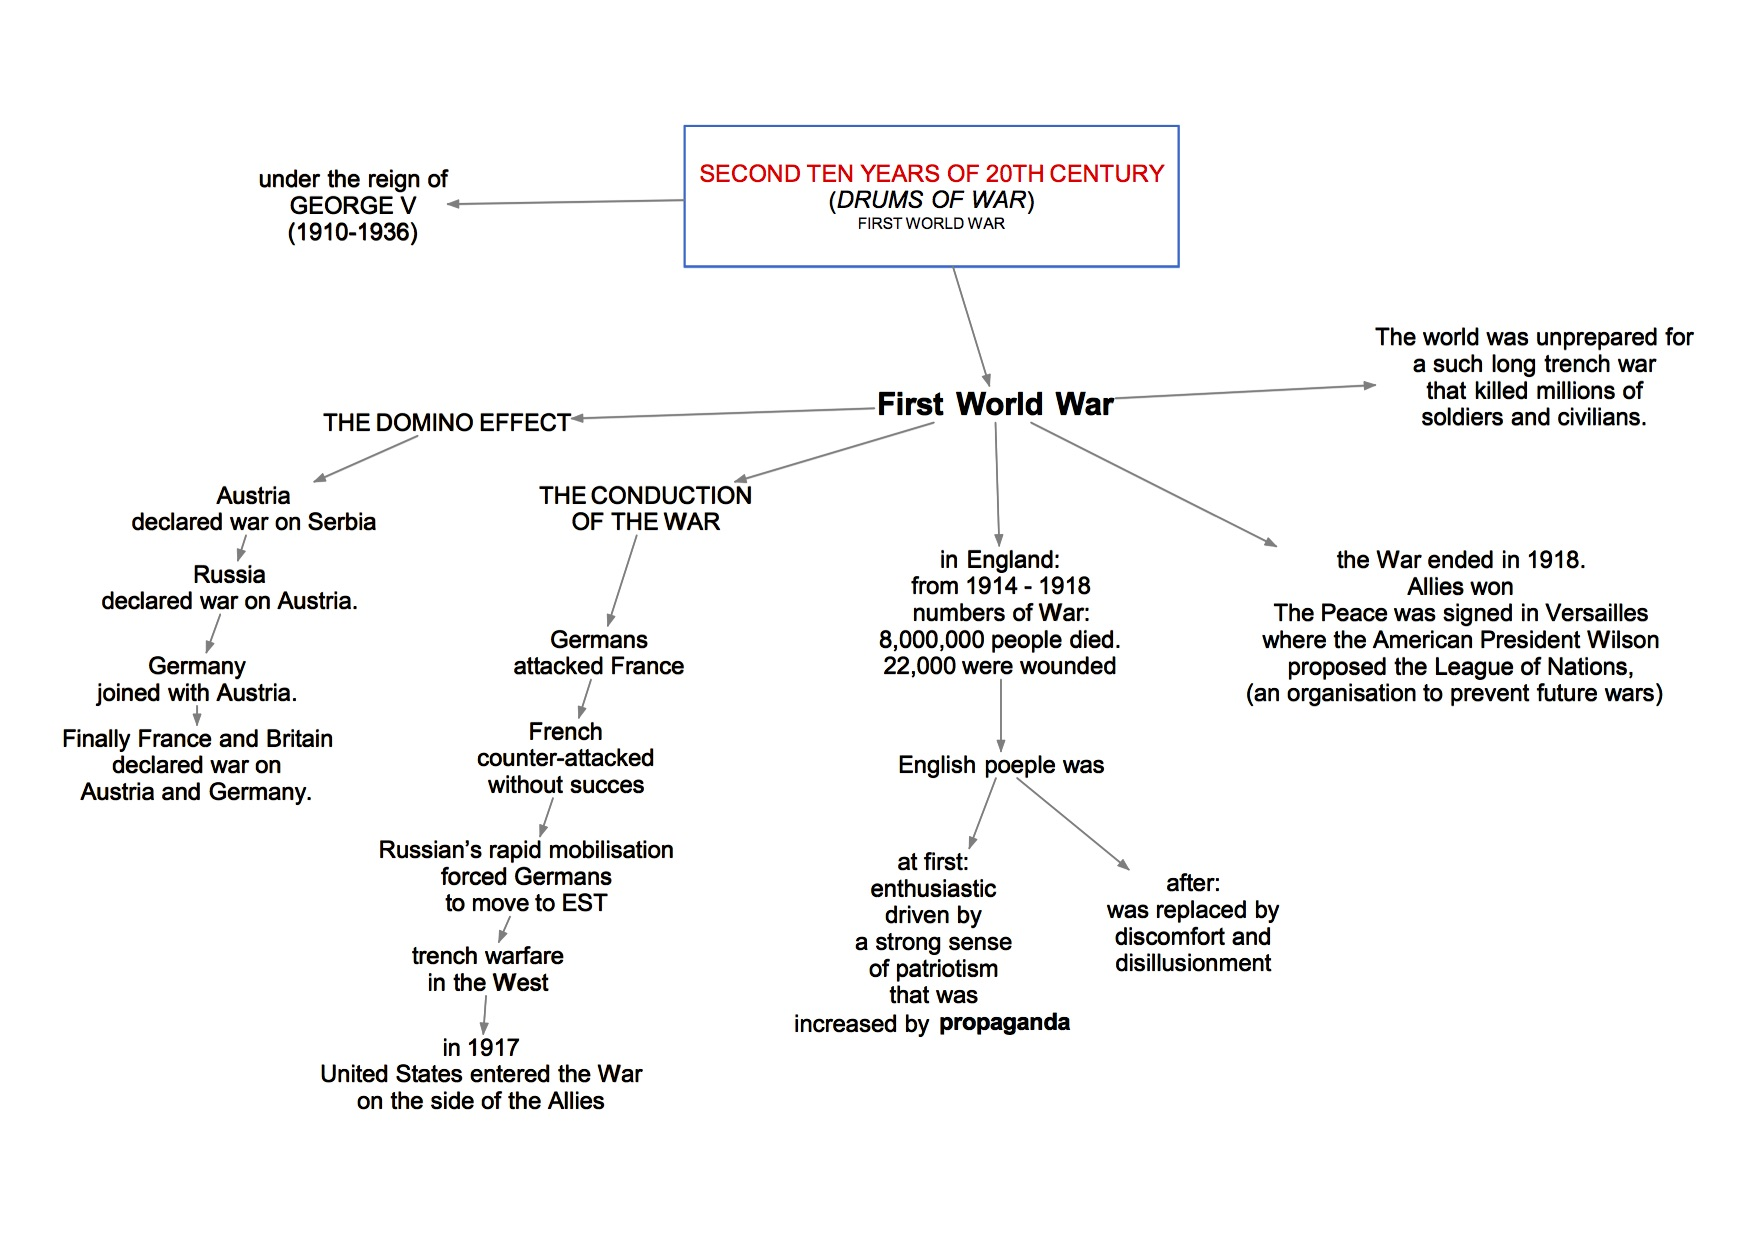 mappa concettuale visual map Inglese  drums of war second ten years firt world war